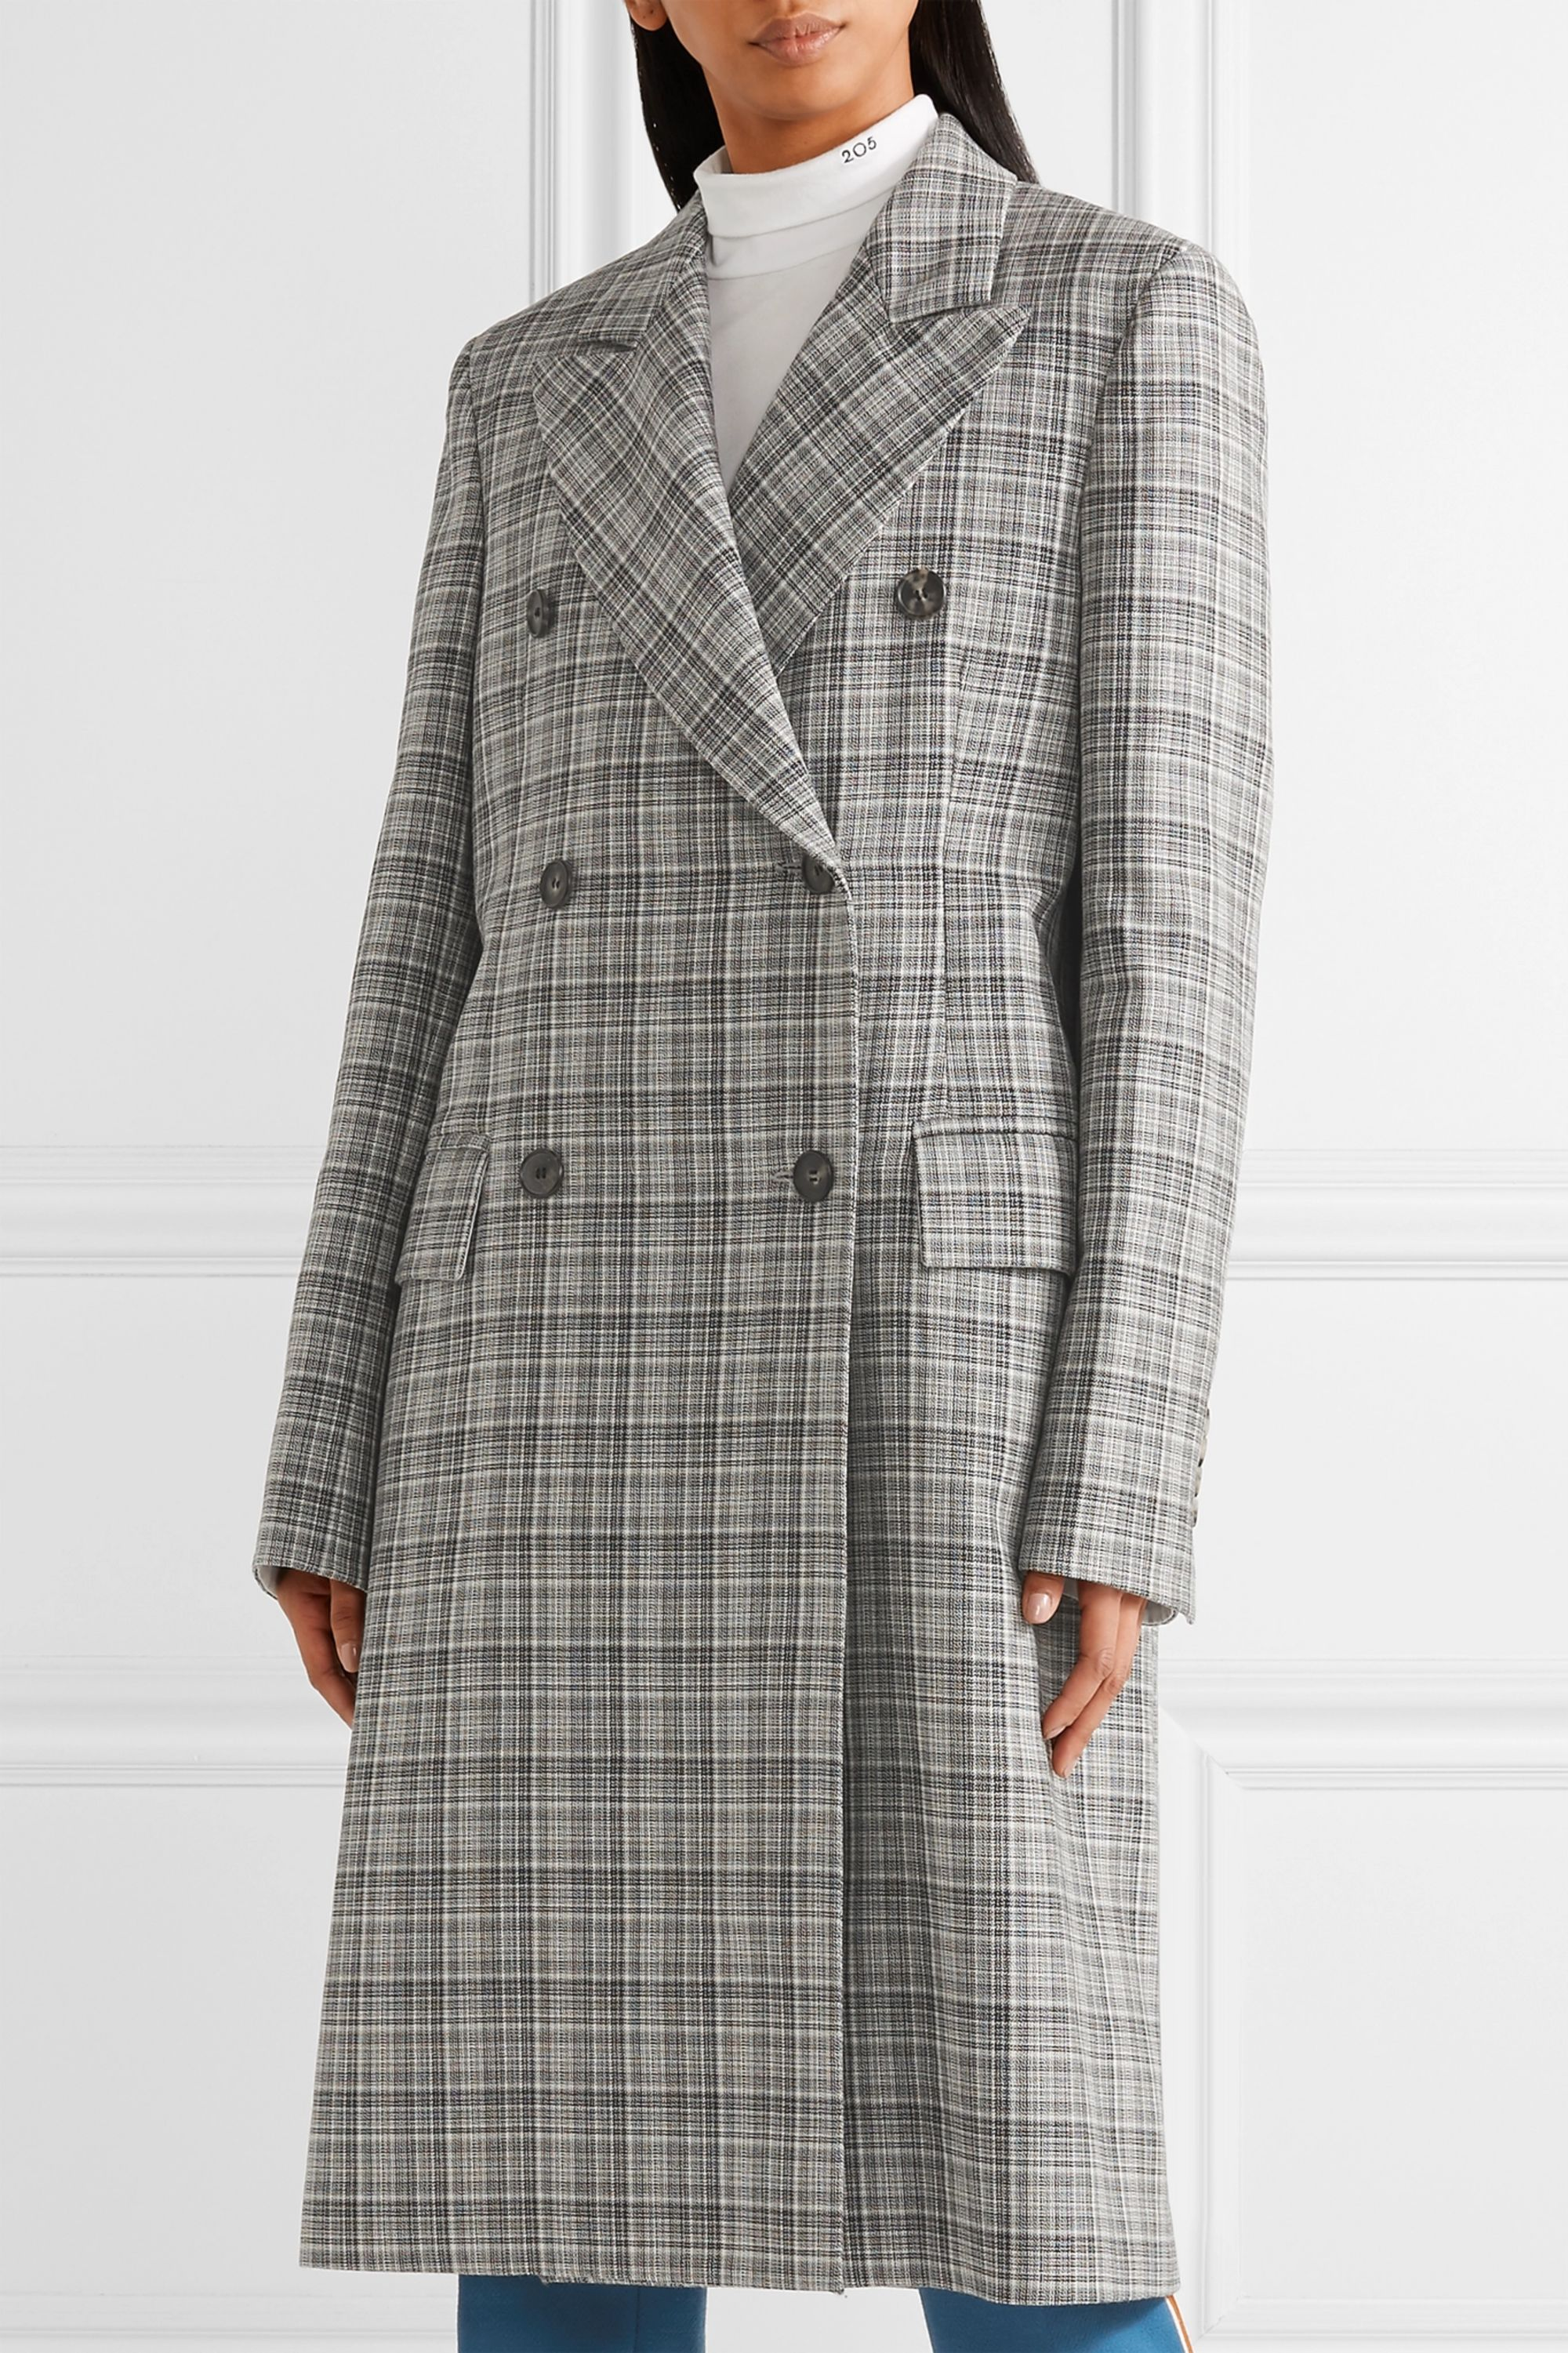 CALVIN KLEIN 205W39NYC Double-breasted layered PVC and plaid wool coat